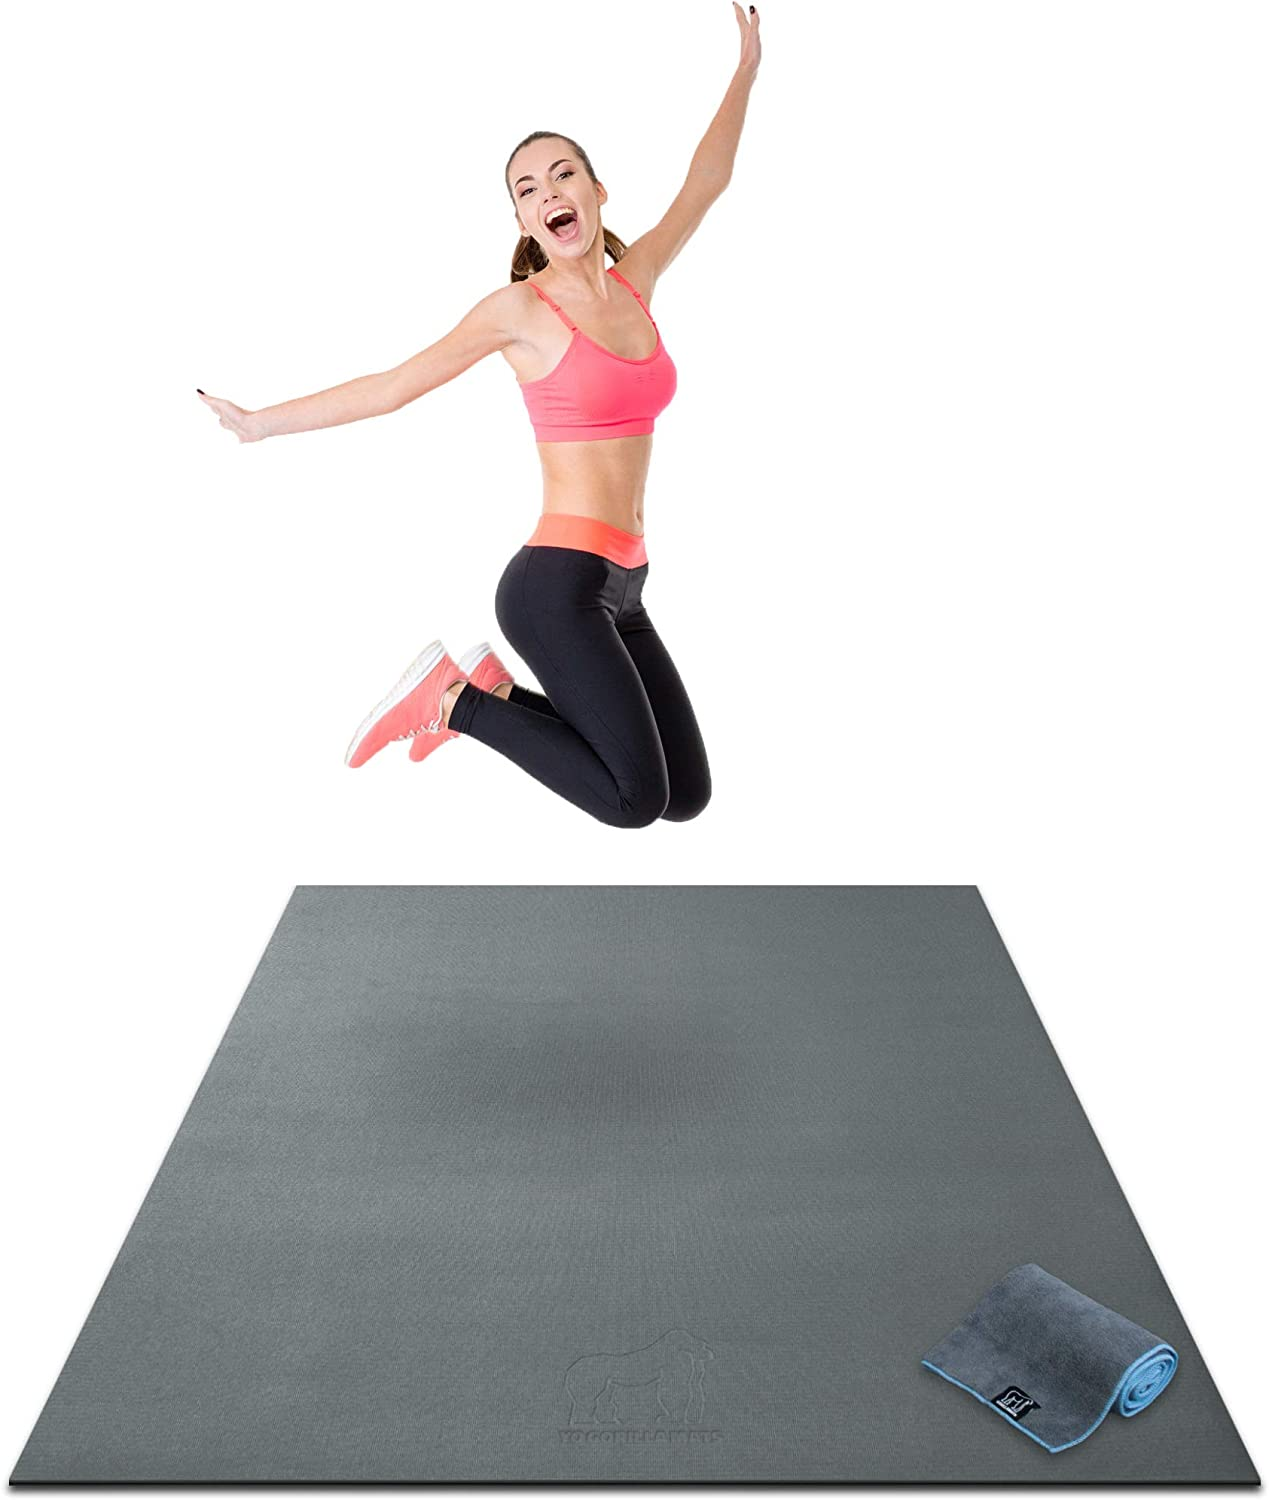 Best Mat For Jumping Rope